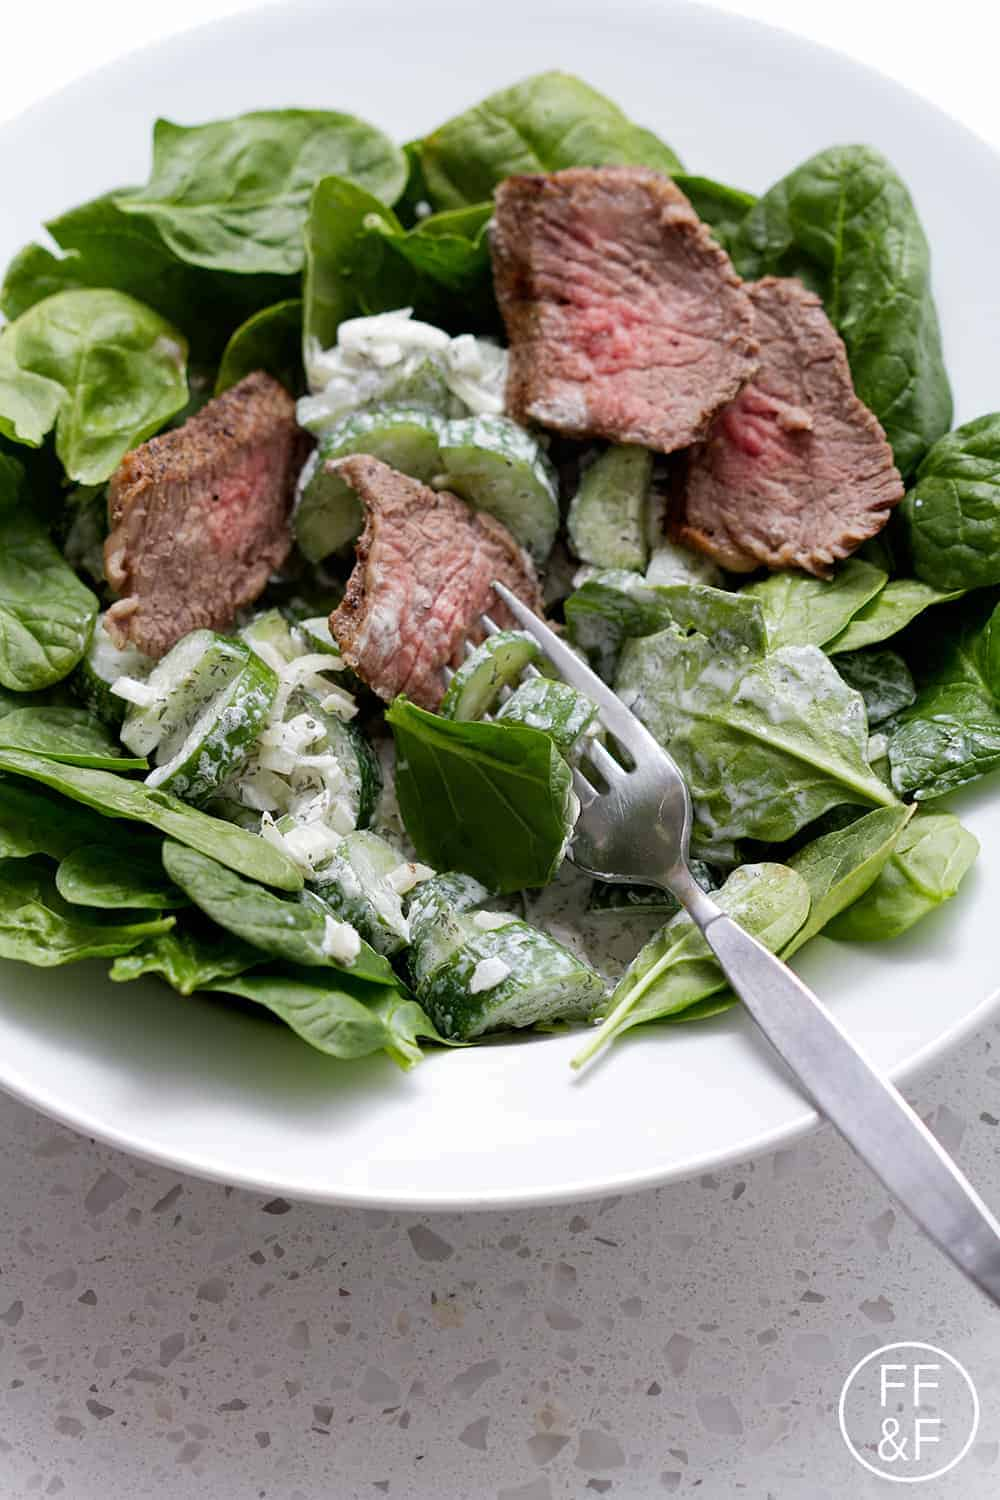 Tri Tip Spinach Salad with a Creamy Cucumber Dill Dressing from foodfashionandfun.com